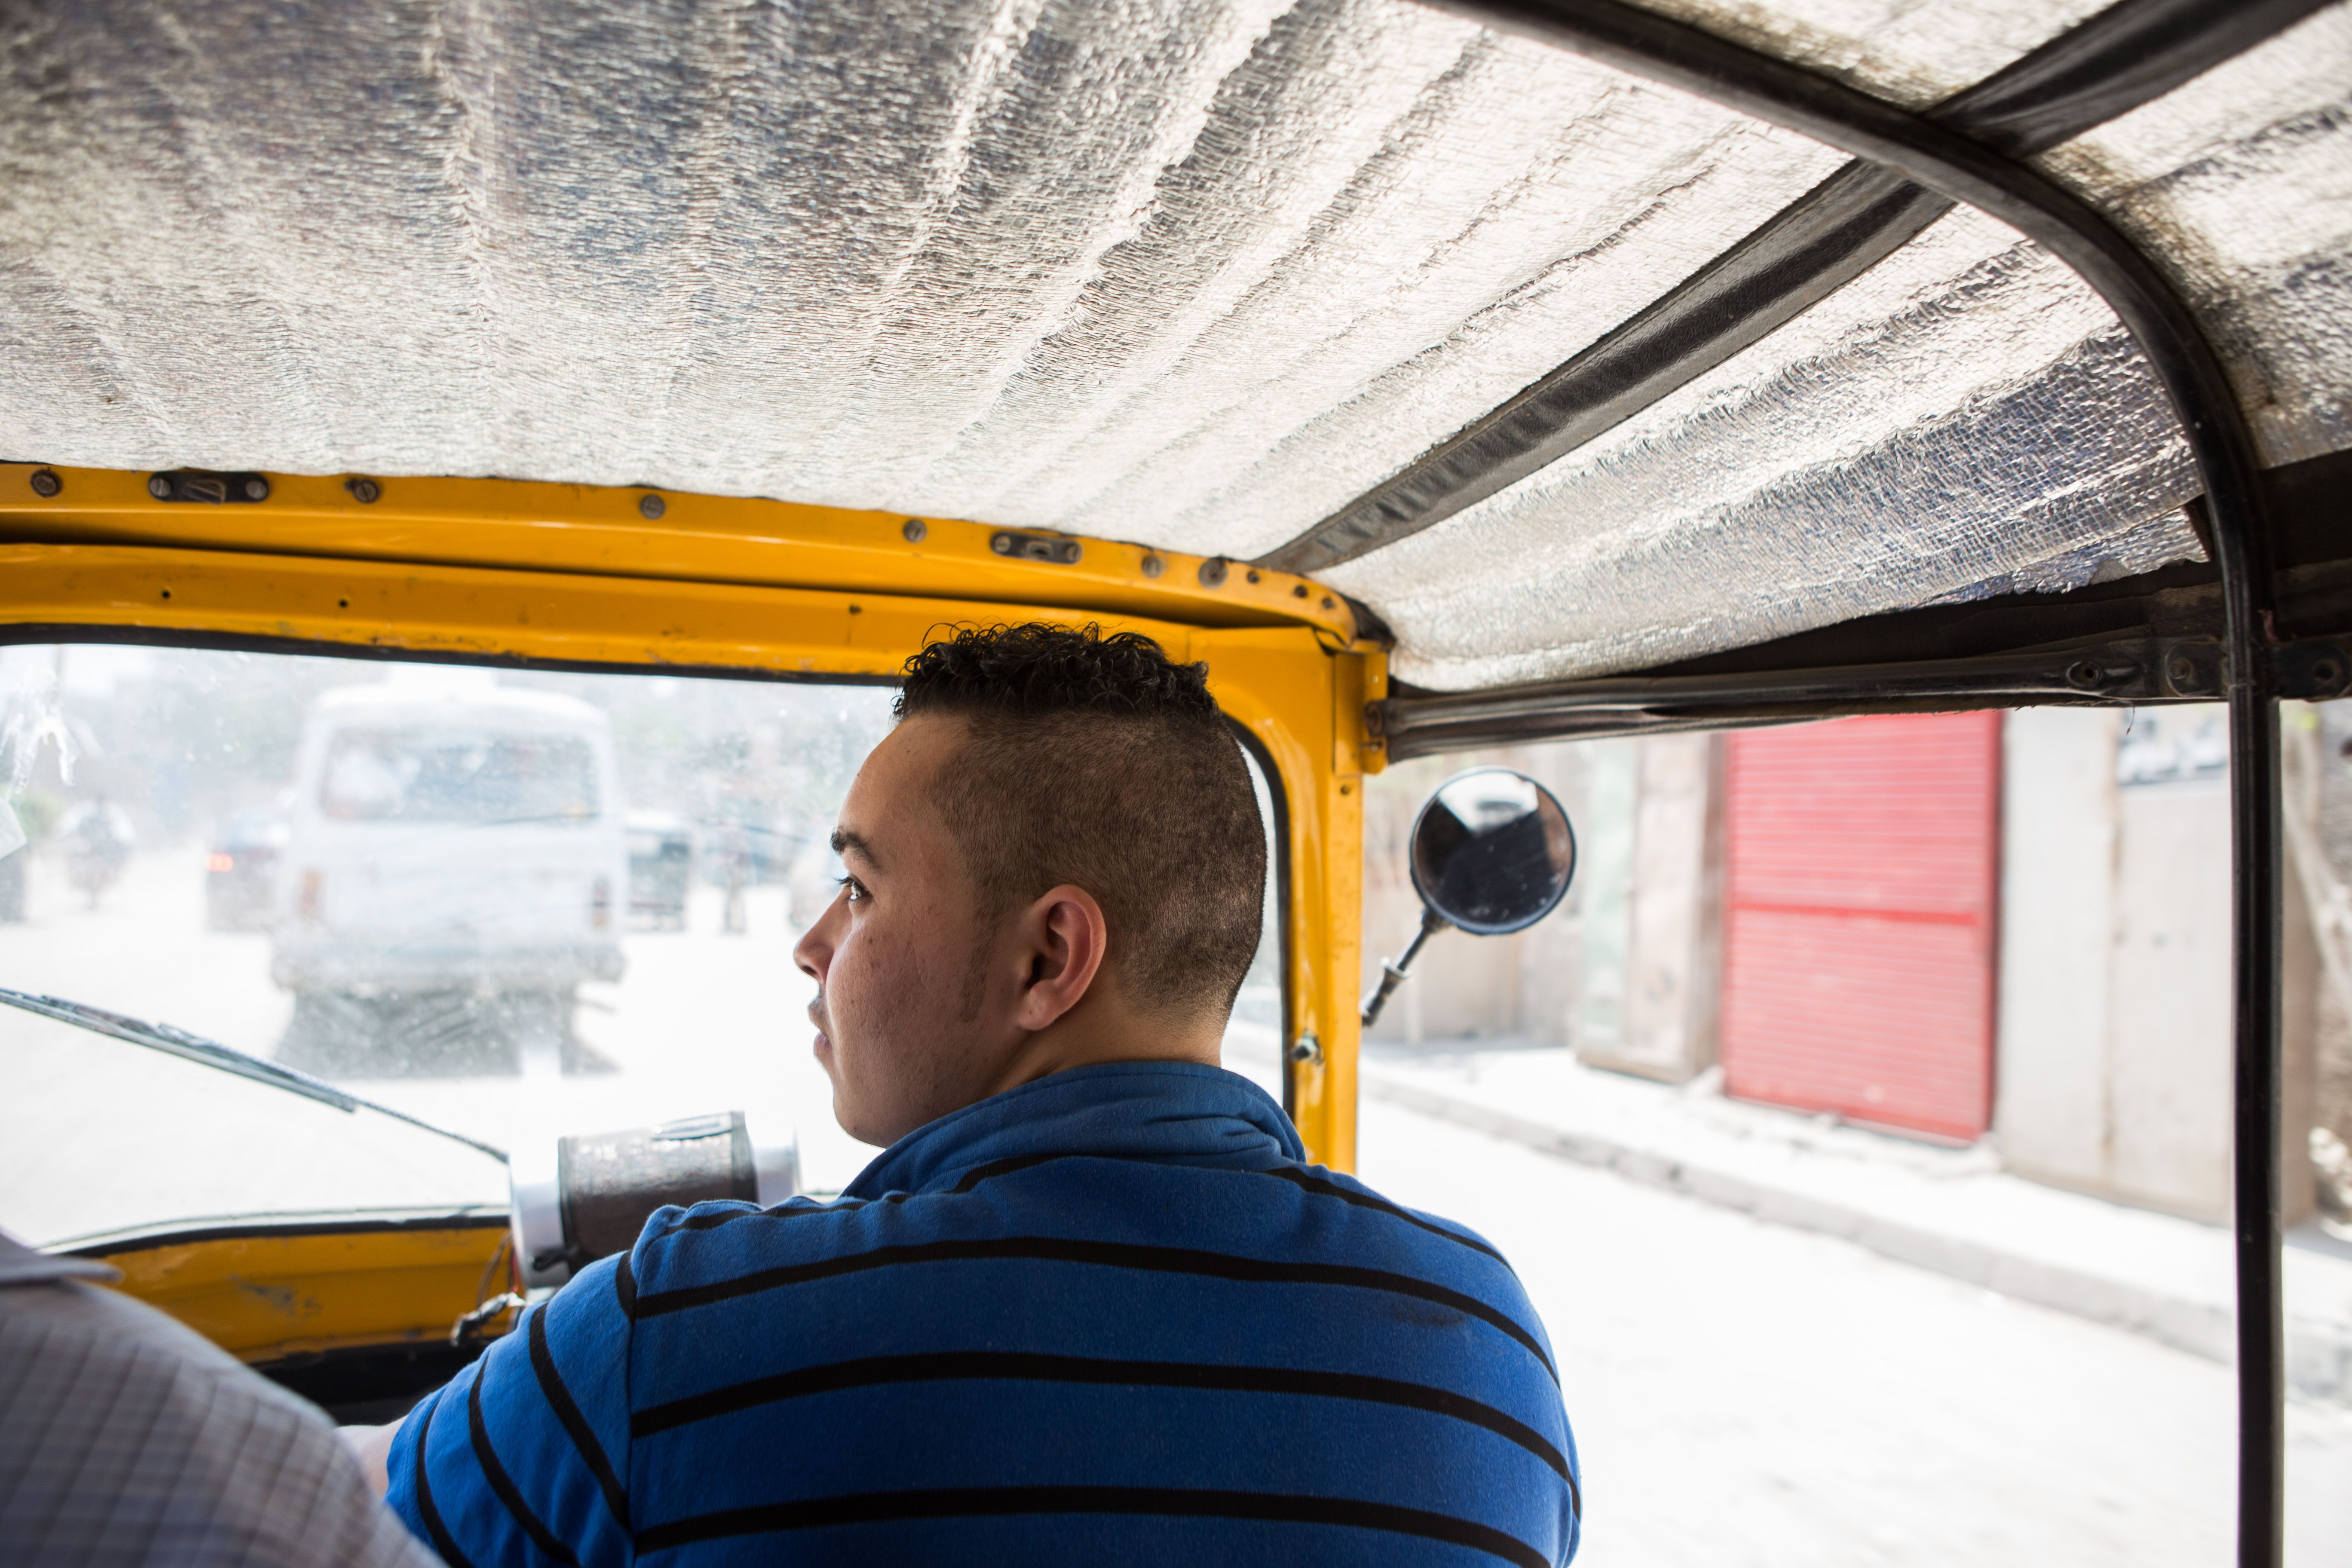 Tuk tuks are a preferred mode of transport in districts with narrow streets, but some blame them for exacerbating Cairo's traffic problems. May 1, 2014